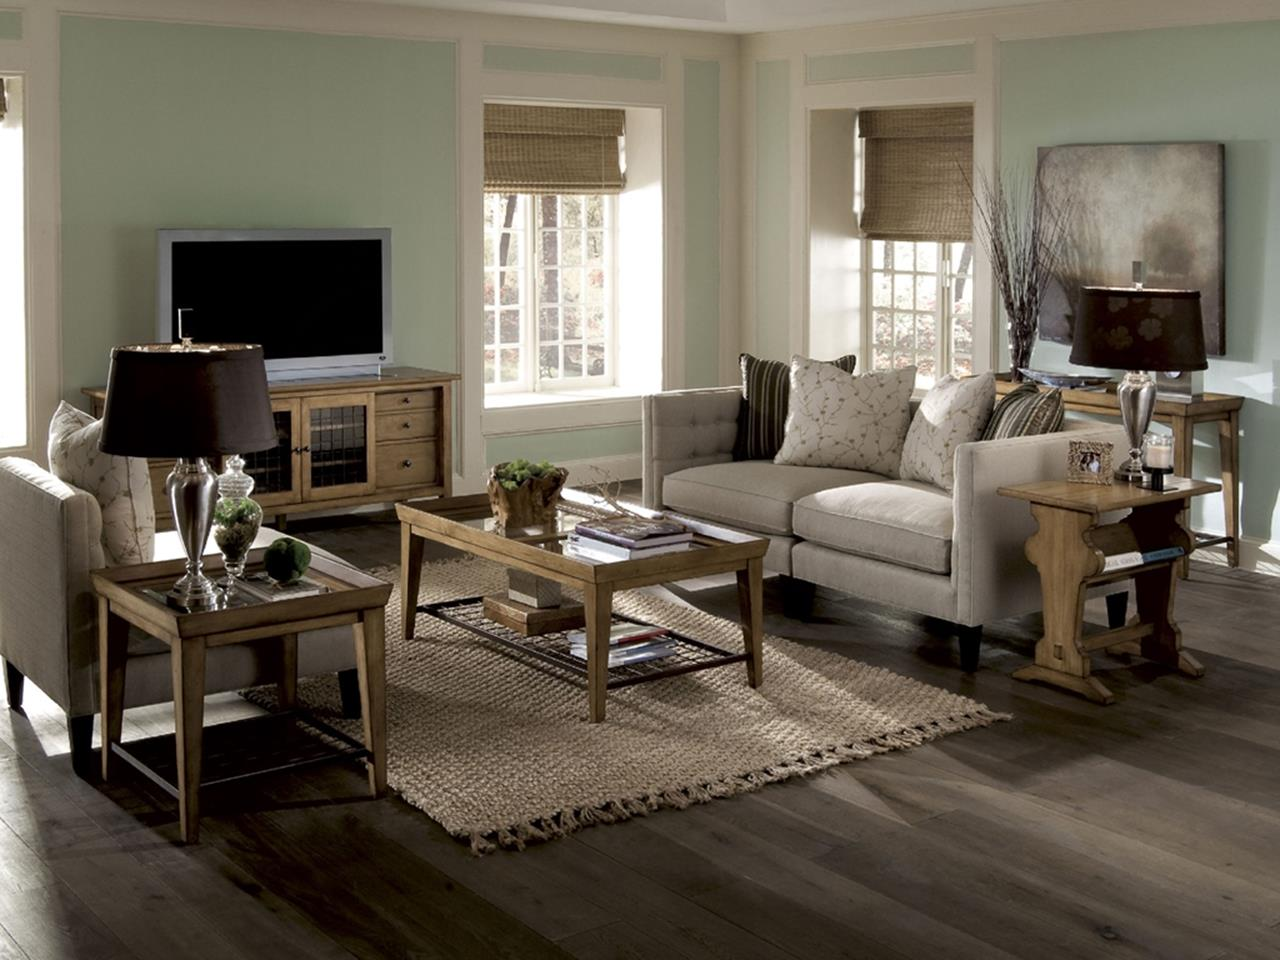 Country Style Living Room Furniture Ideas 31 - DecoRelated